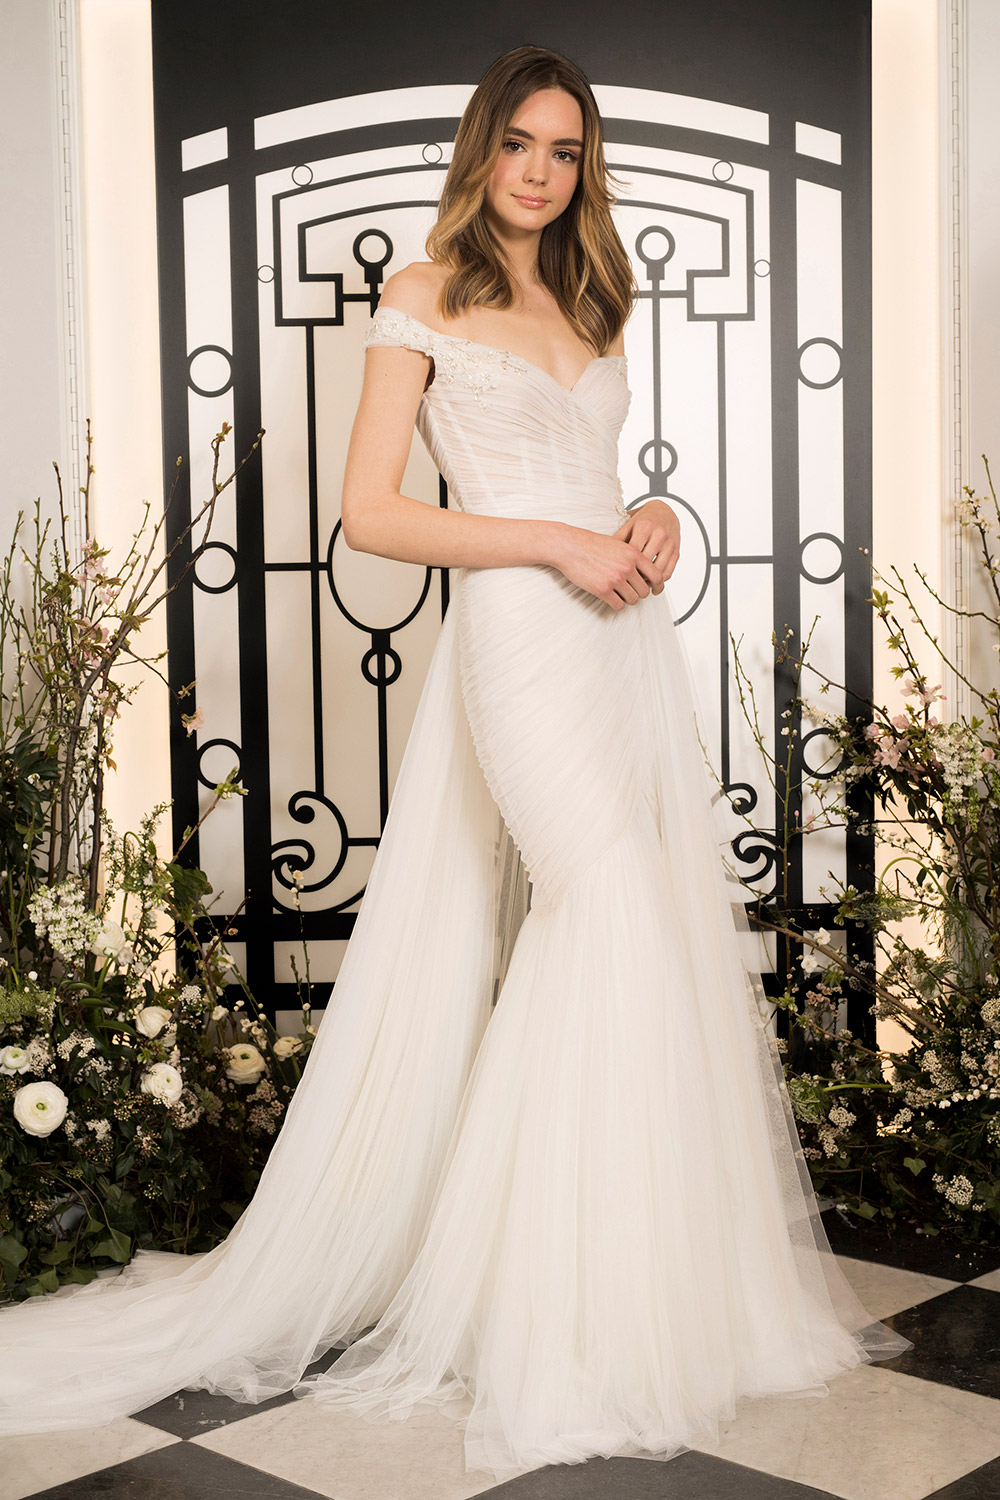 Elysee - Jenny Packham 2020 Bridal Collection. www.theweddingnotebook.com